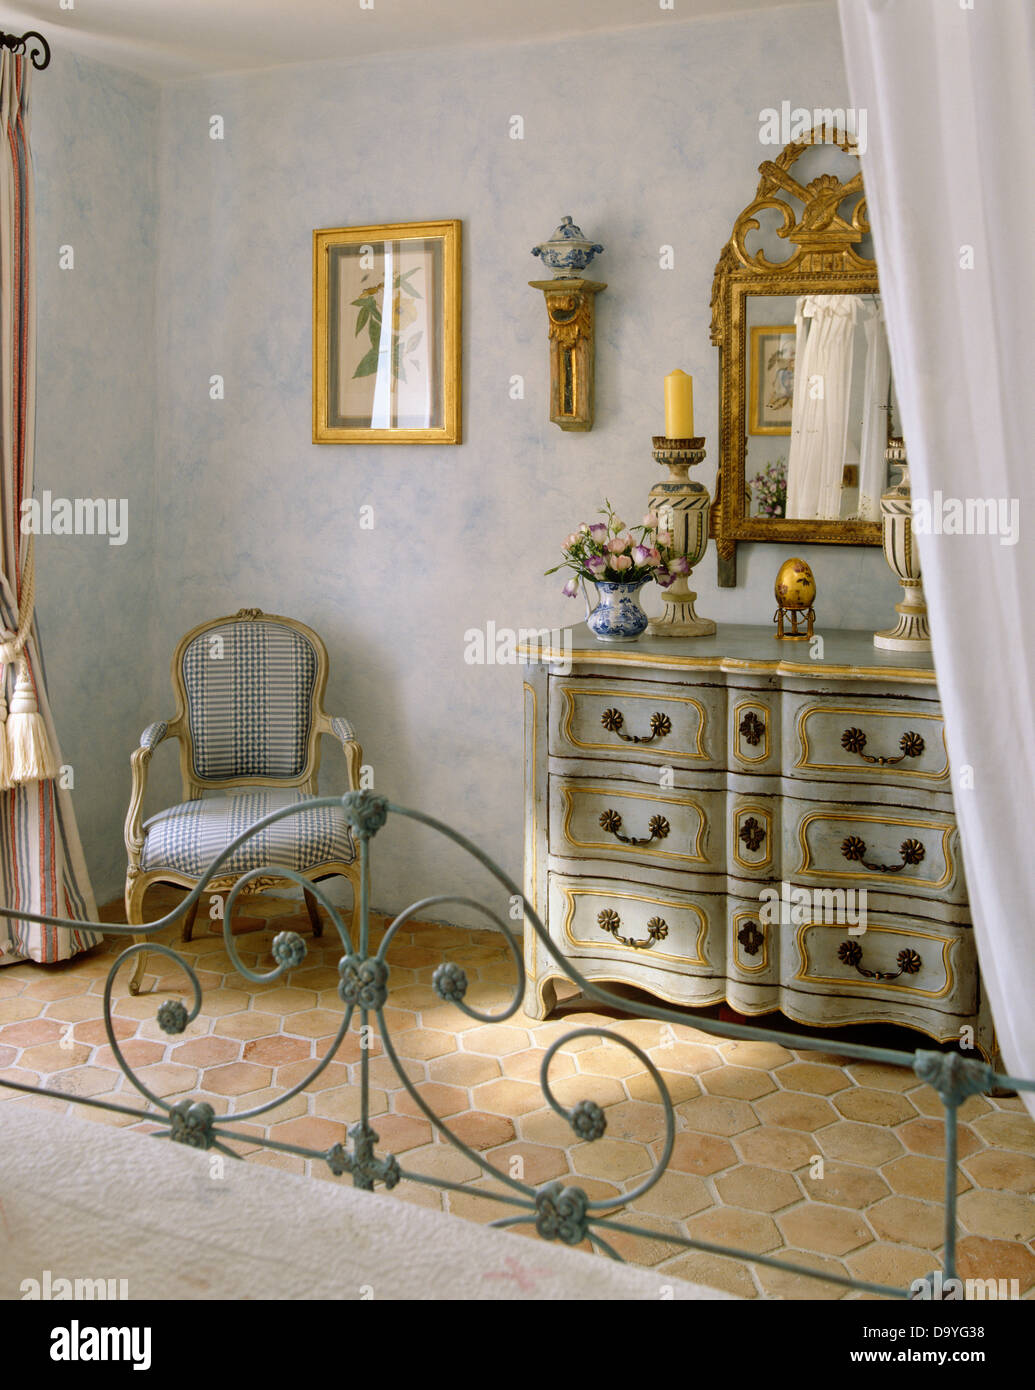 Pale Bedroom Wrought Iron Bed In Pale Gray French Country Bedroom With Ornate